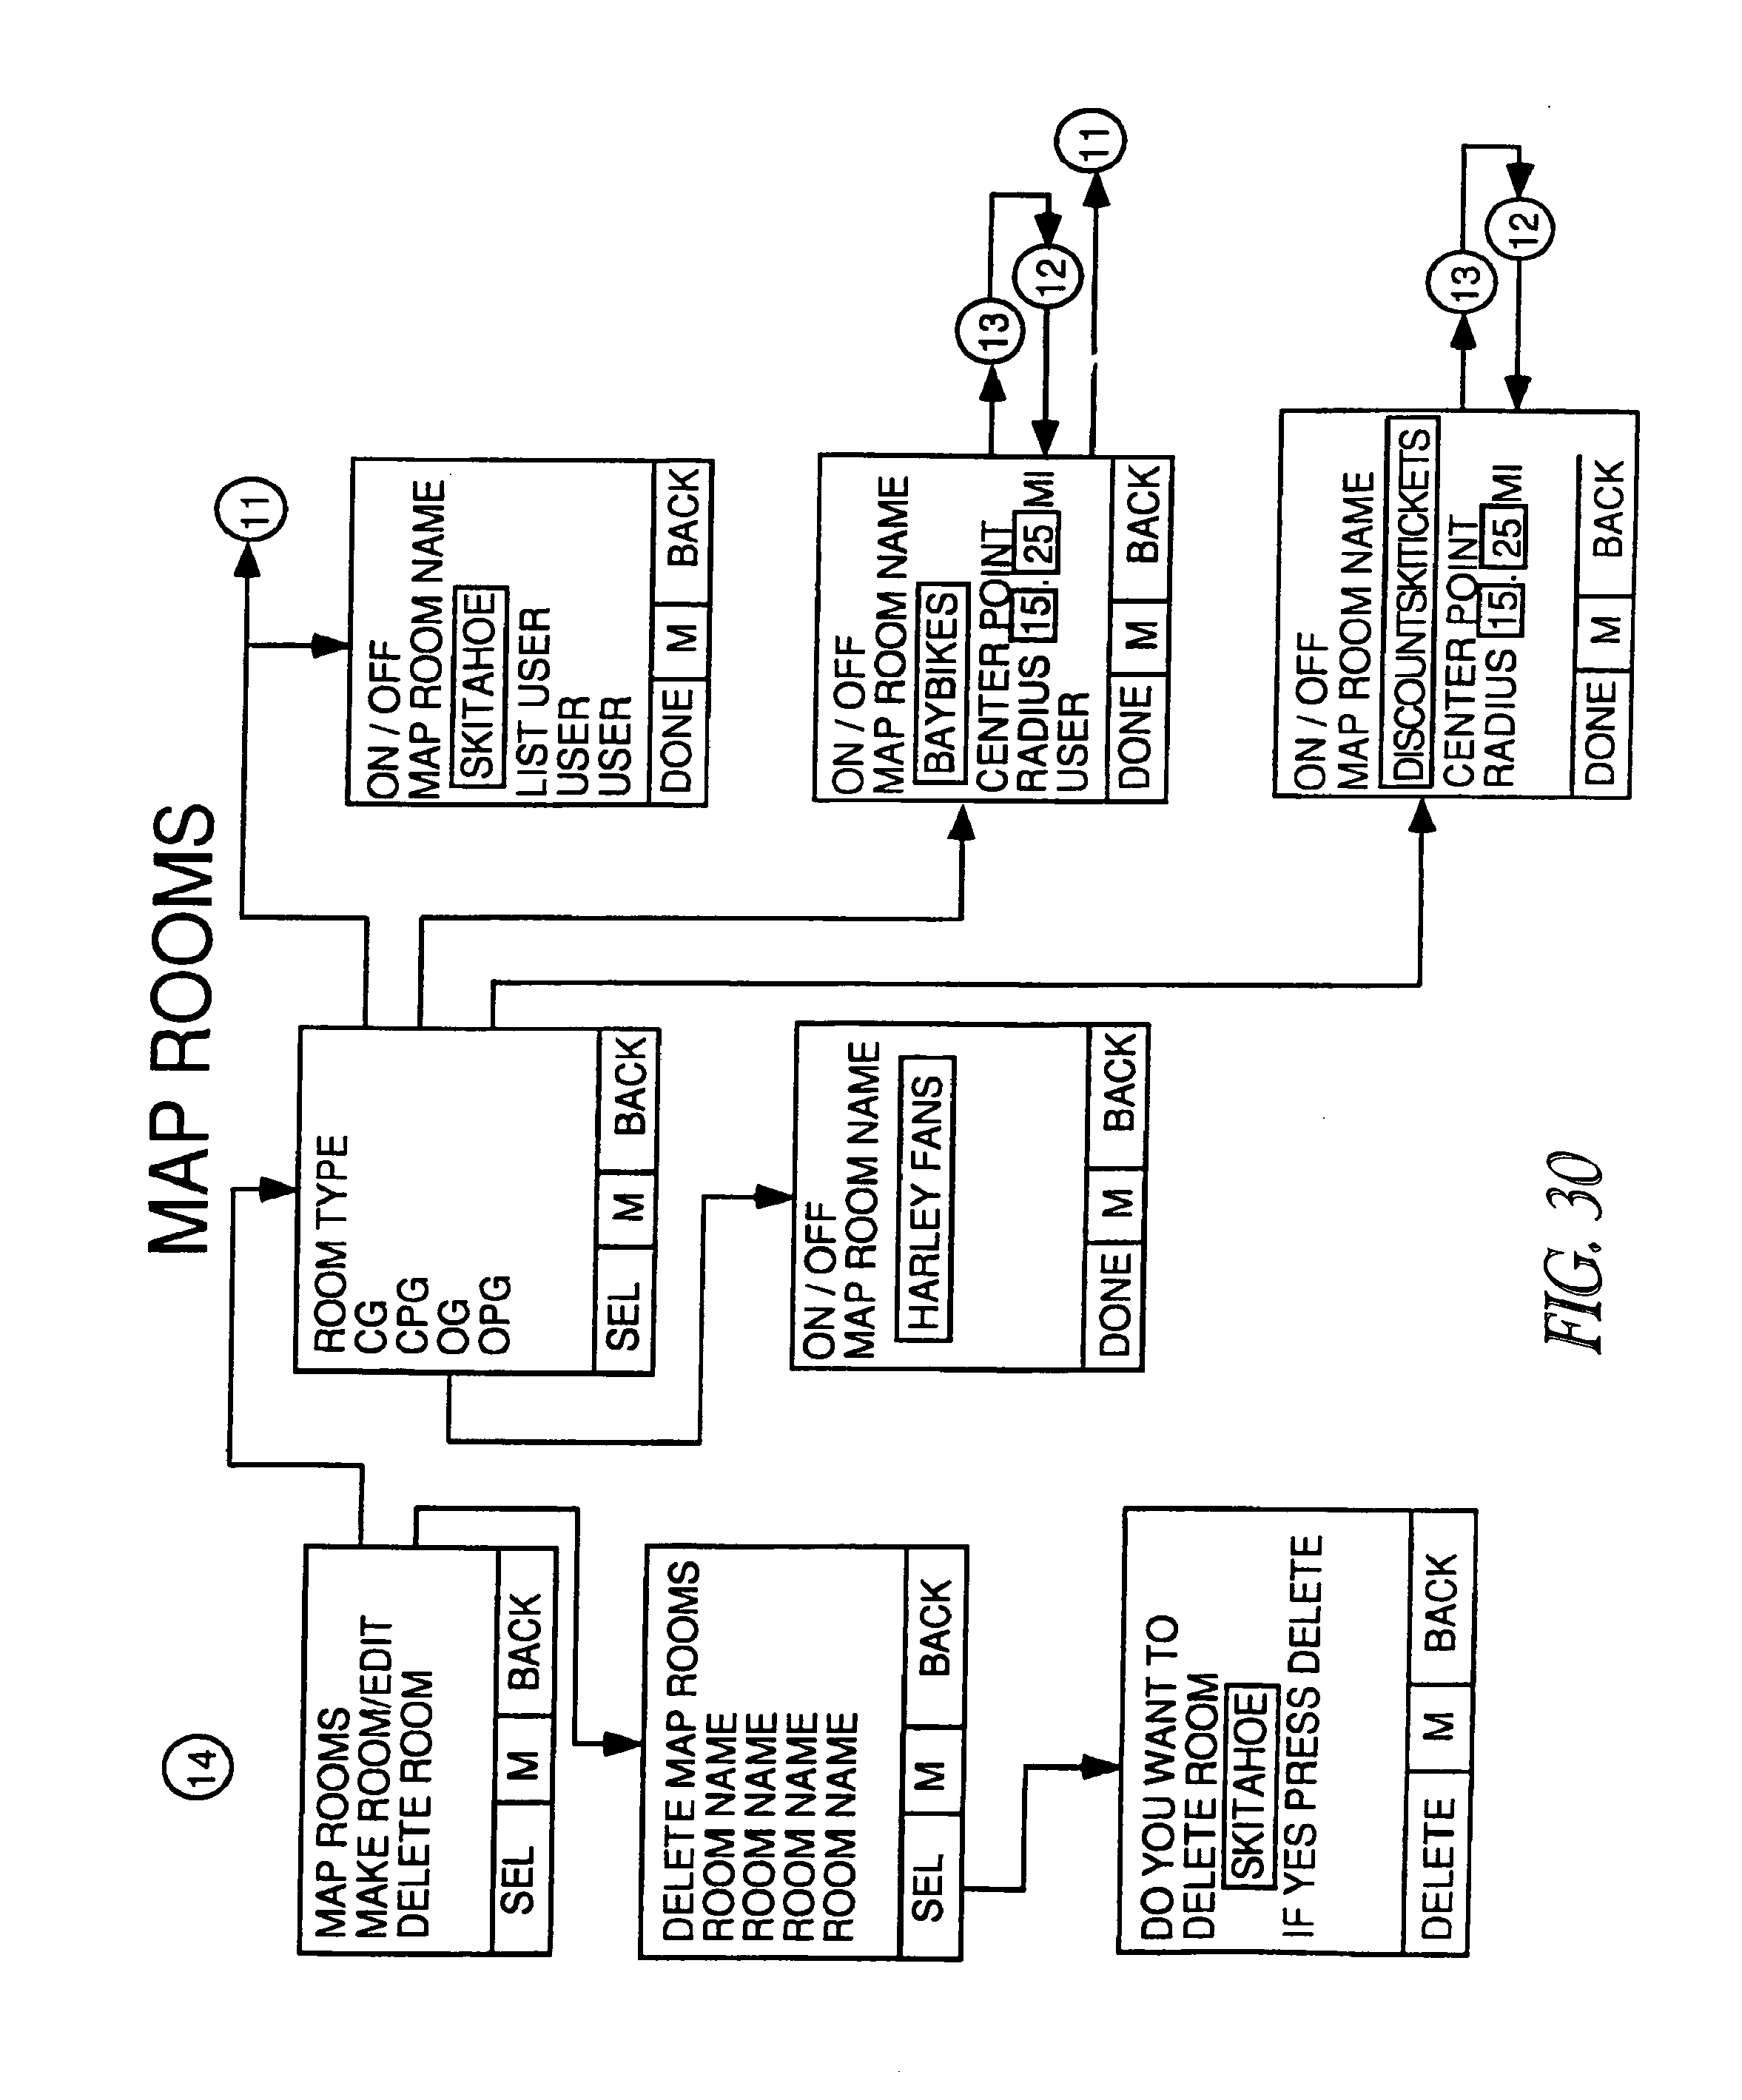 Us8385964b2 methods and apparatuses for geospatial based sharing us8385964b2 methods and apparatuses for geospatial based sharing of information by multiple devices google patents fandeluxe Images